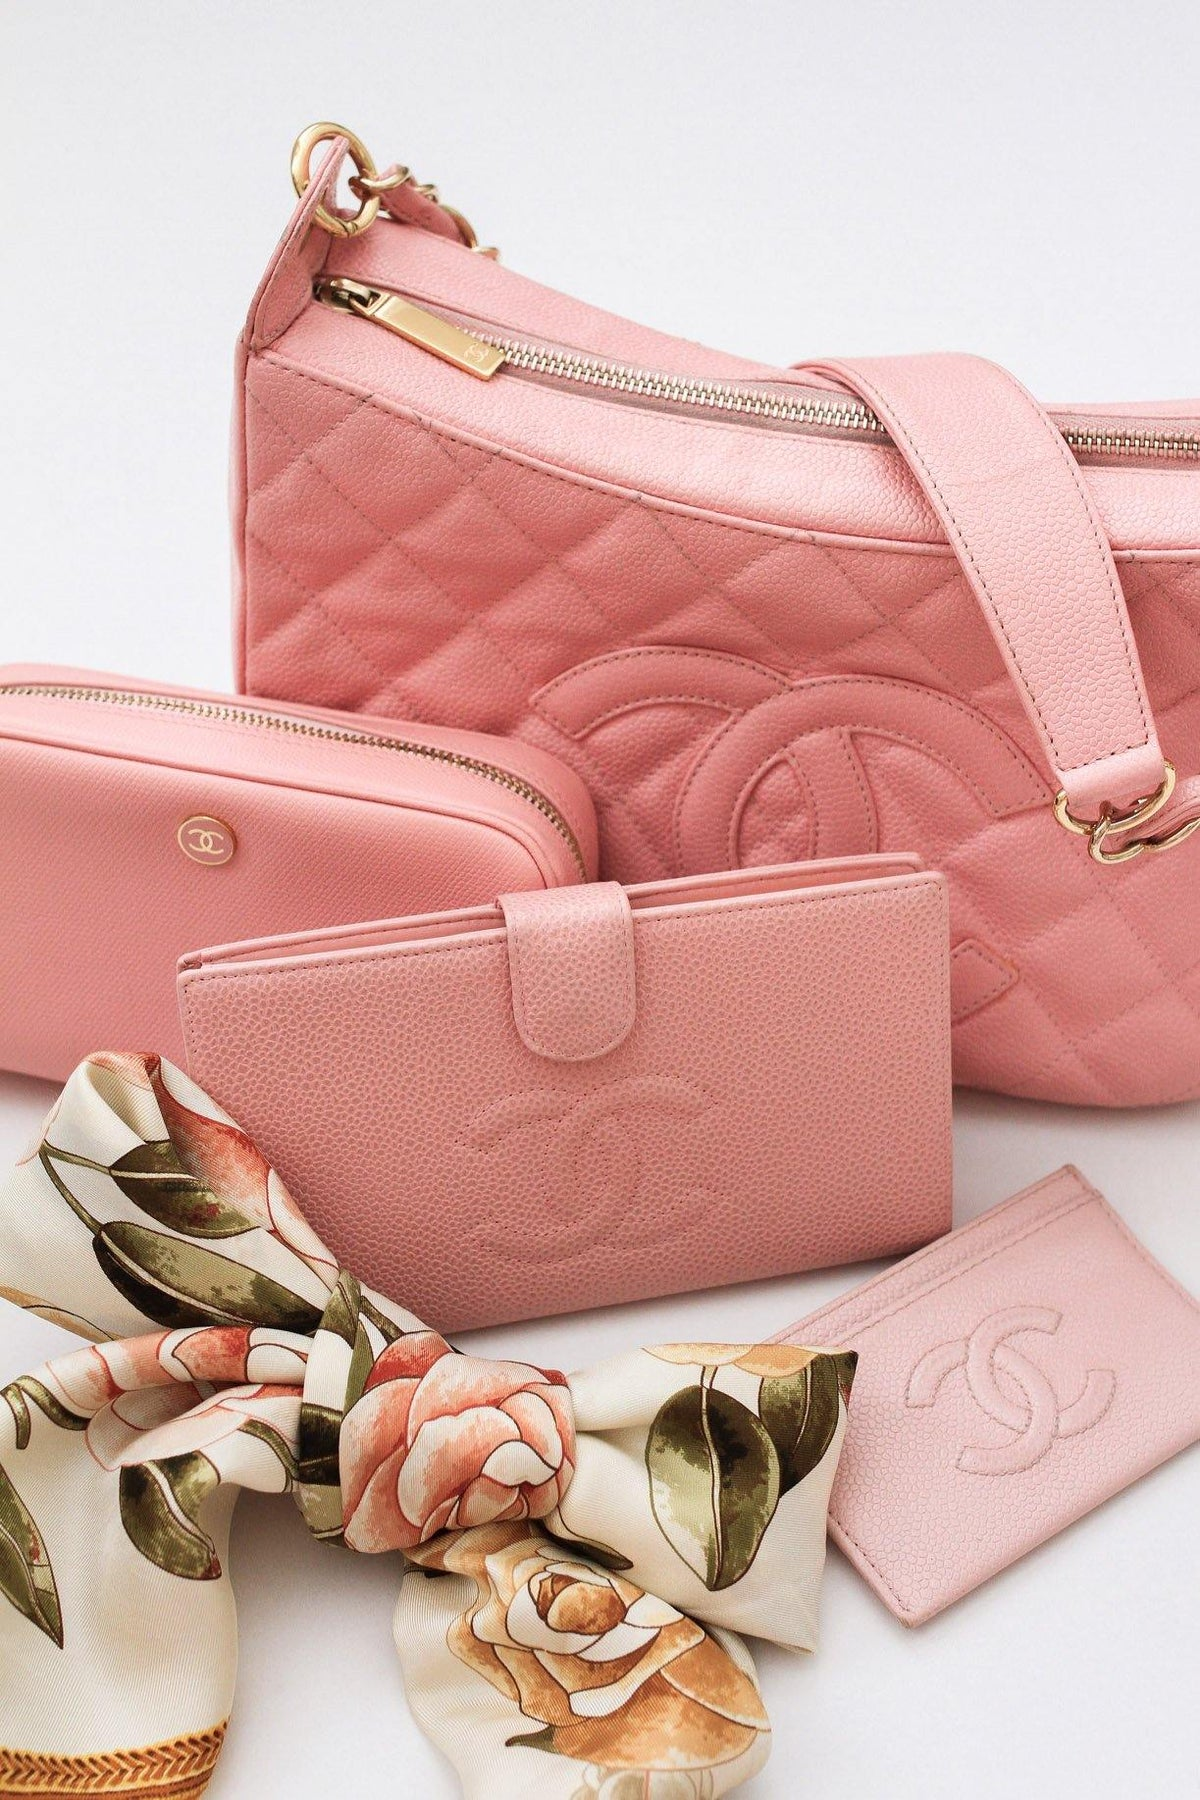 Chanel CC Pink Caviar Leather Shoulder Bag